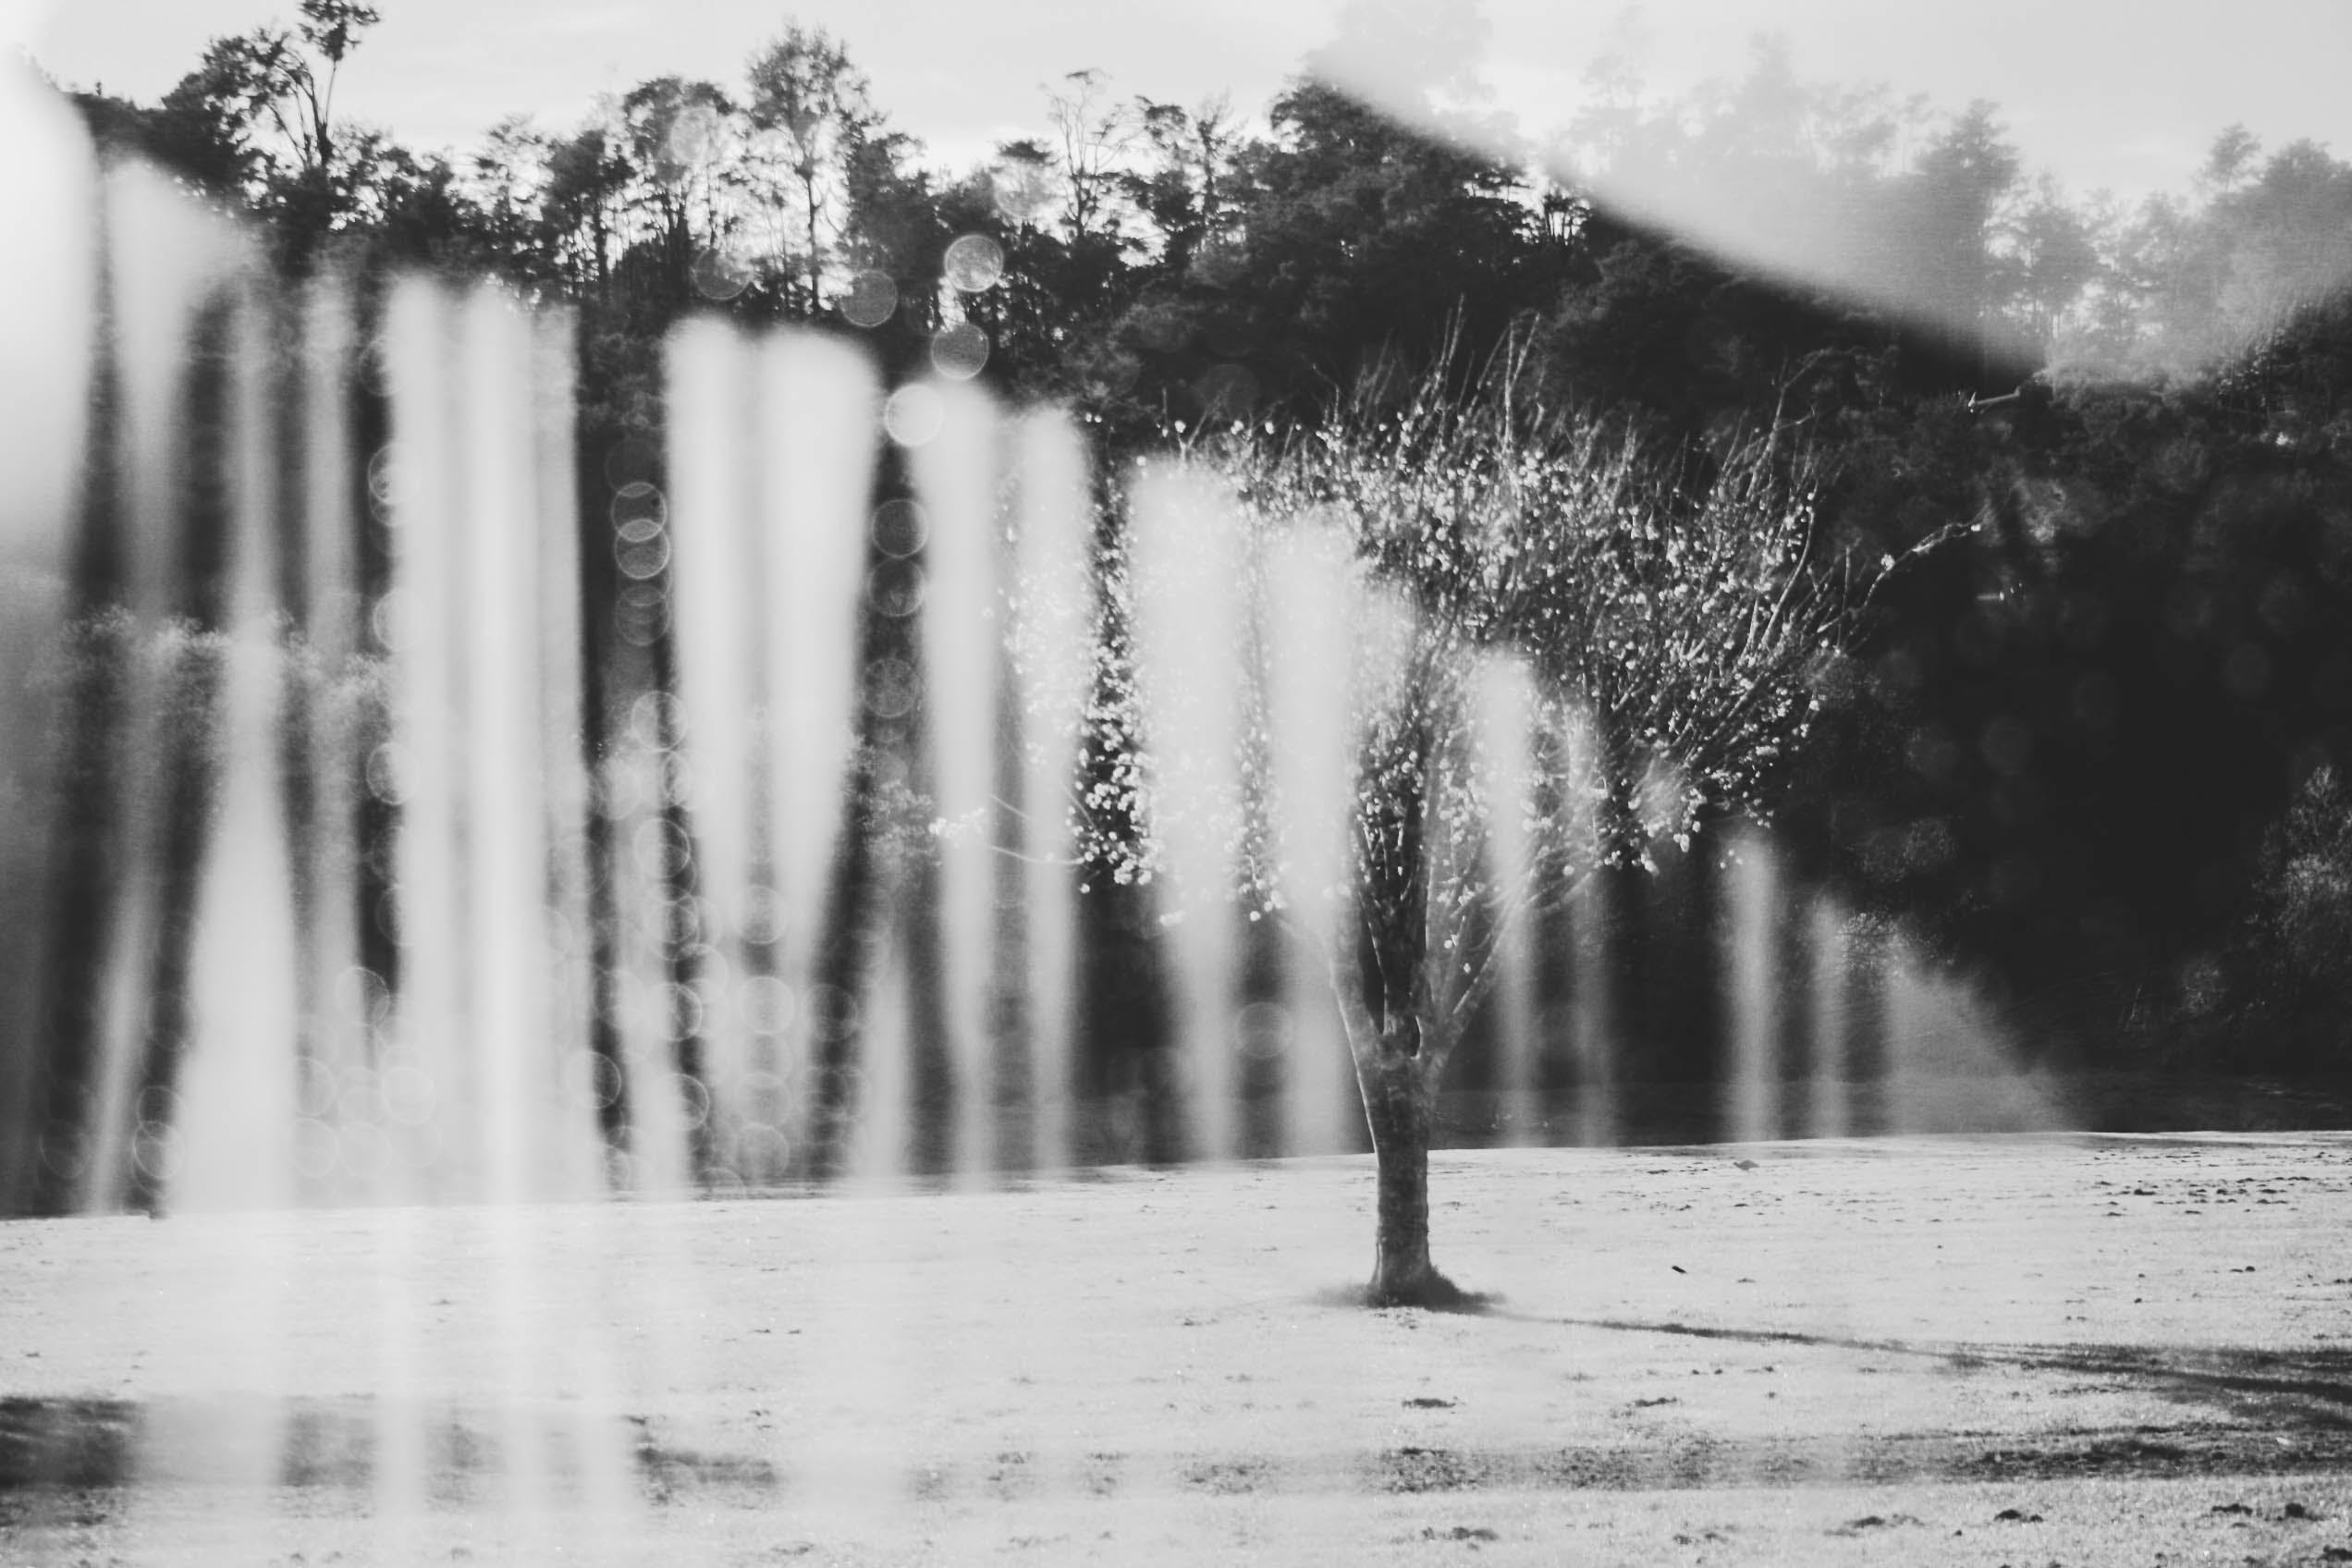 Grayscale Photography of a Tree